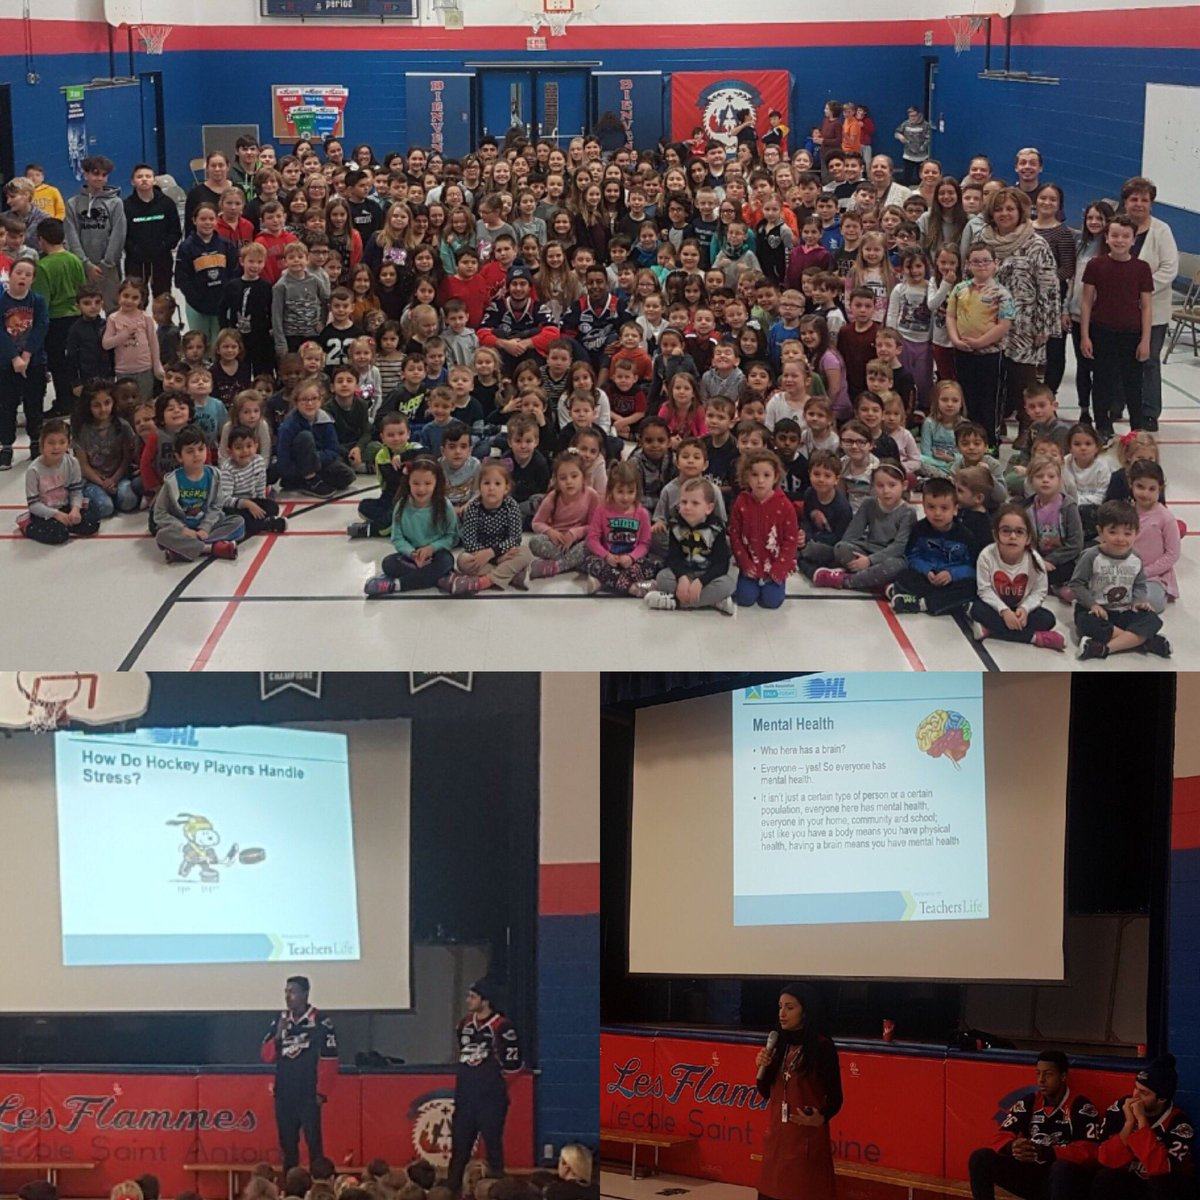 test Twitter Media - A big thank you to Cole & Thomas from the @SpitsHockey for coming out to @EECStAntoine and engaging over 200 youth in speaking about the importance of #mentalhealth #santémentale @teacherslife @ohlofficial @cmhaontario #talktoday #itsoktoaskforhelp https://t.co/0BgCQUYJk9